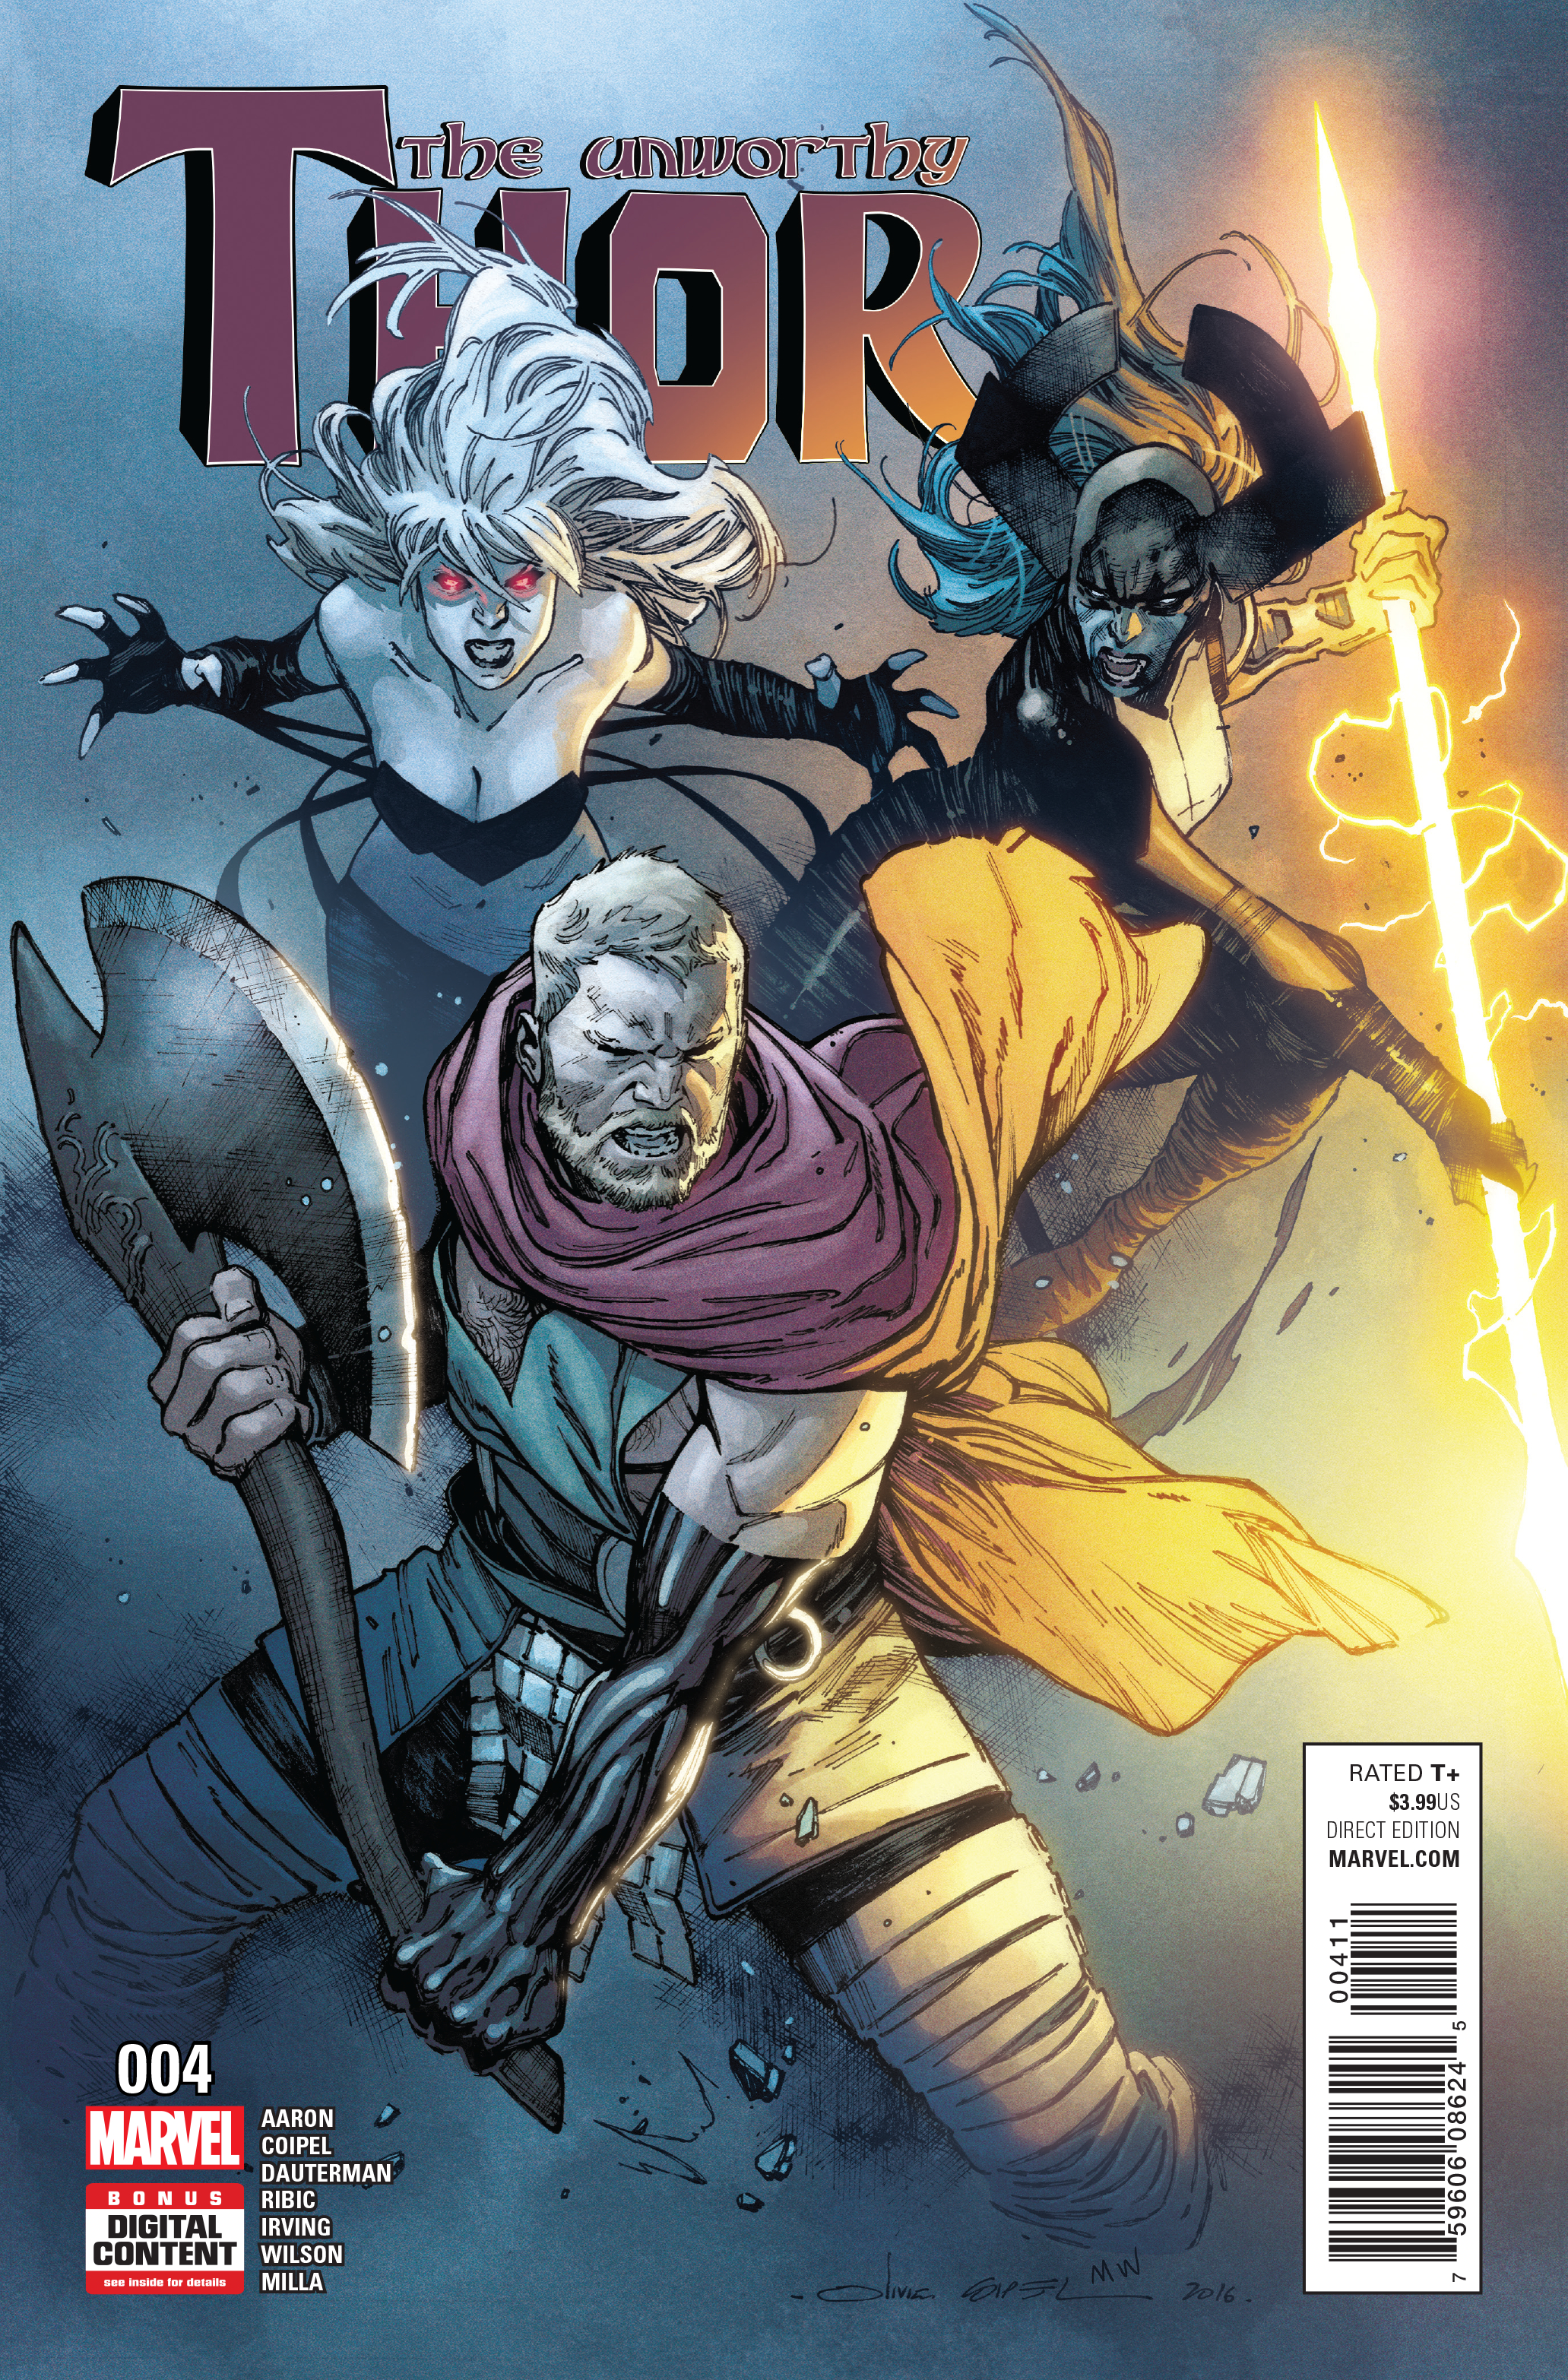 UNWORTHY THOR #4 (OF 5)